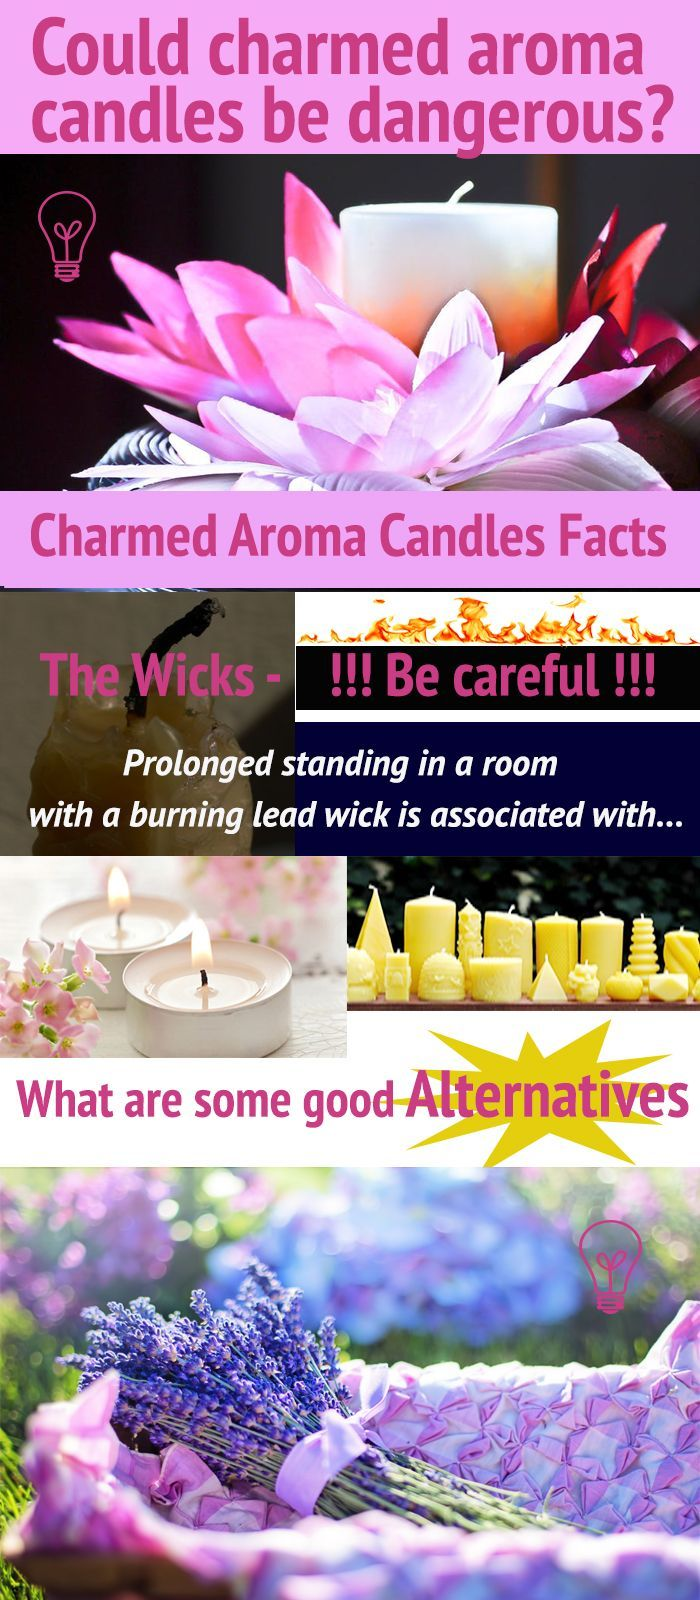 When talking about charmed aroma candles facts could be shocking, though. Let's look things backward – what are candles made of actually? What are some good alternatives? #organic #candles #alternatives